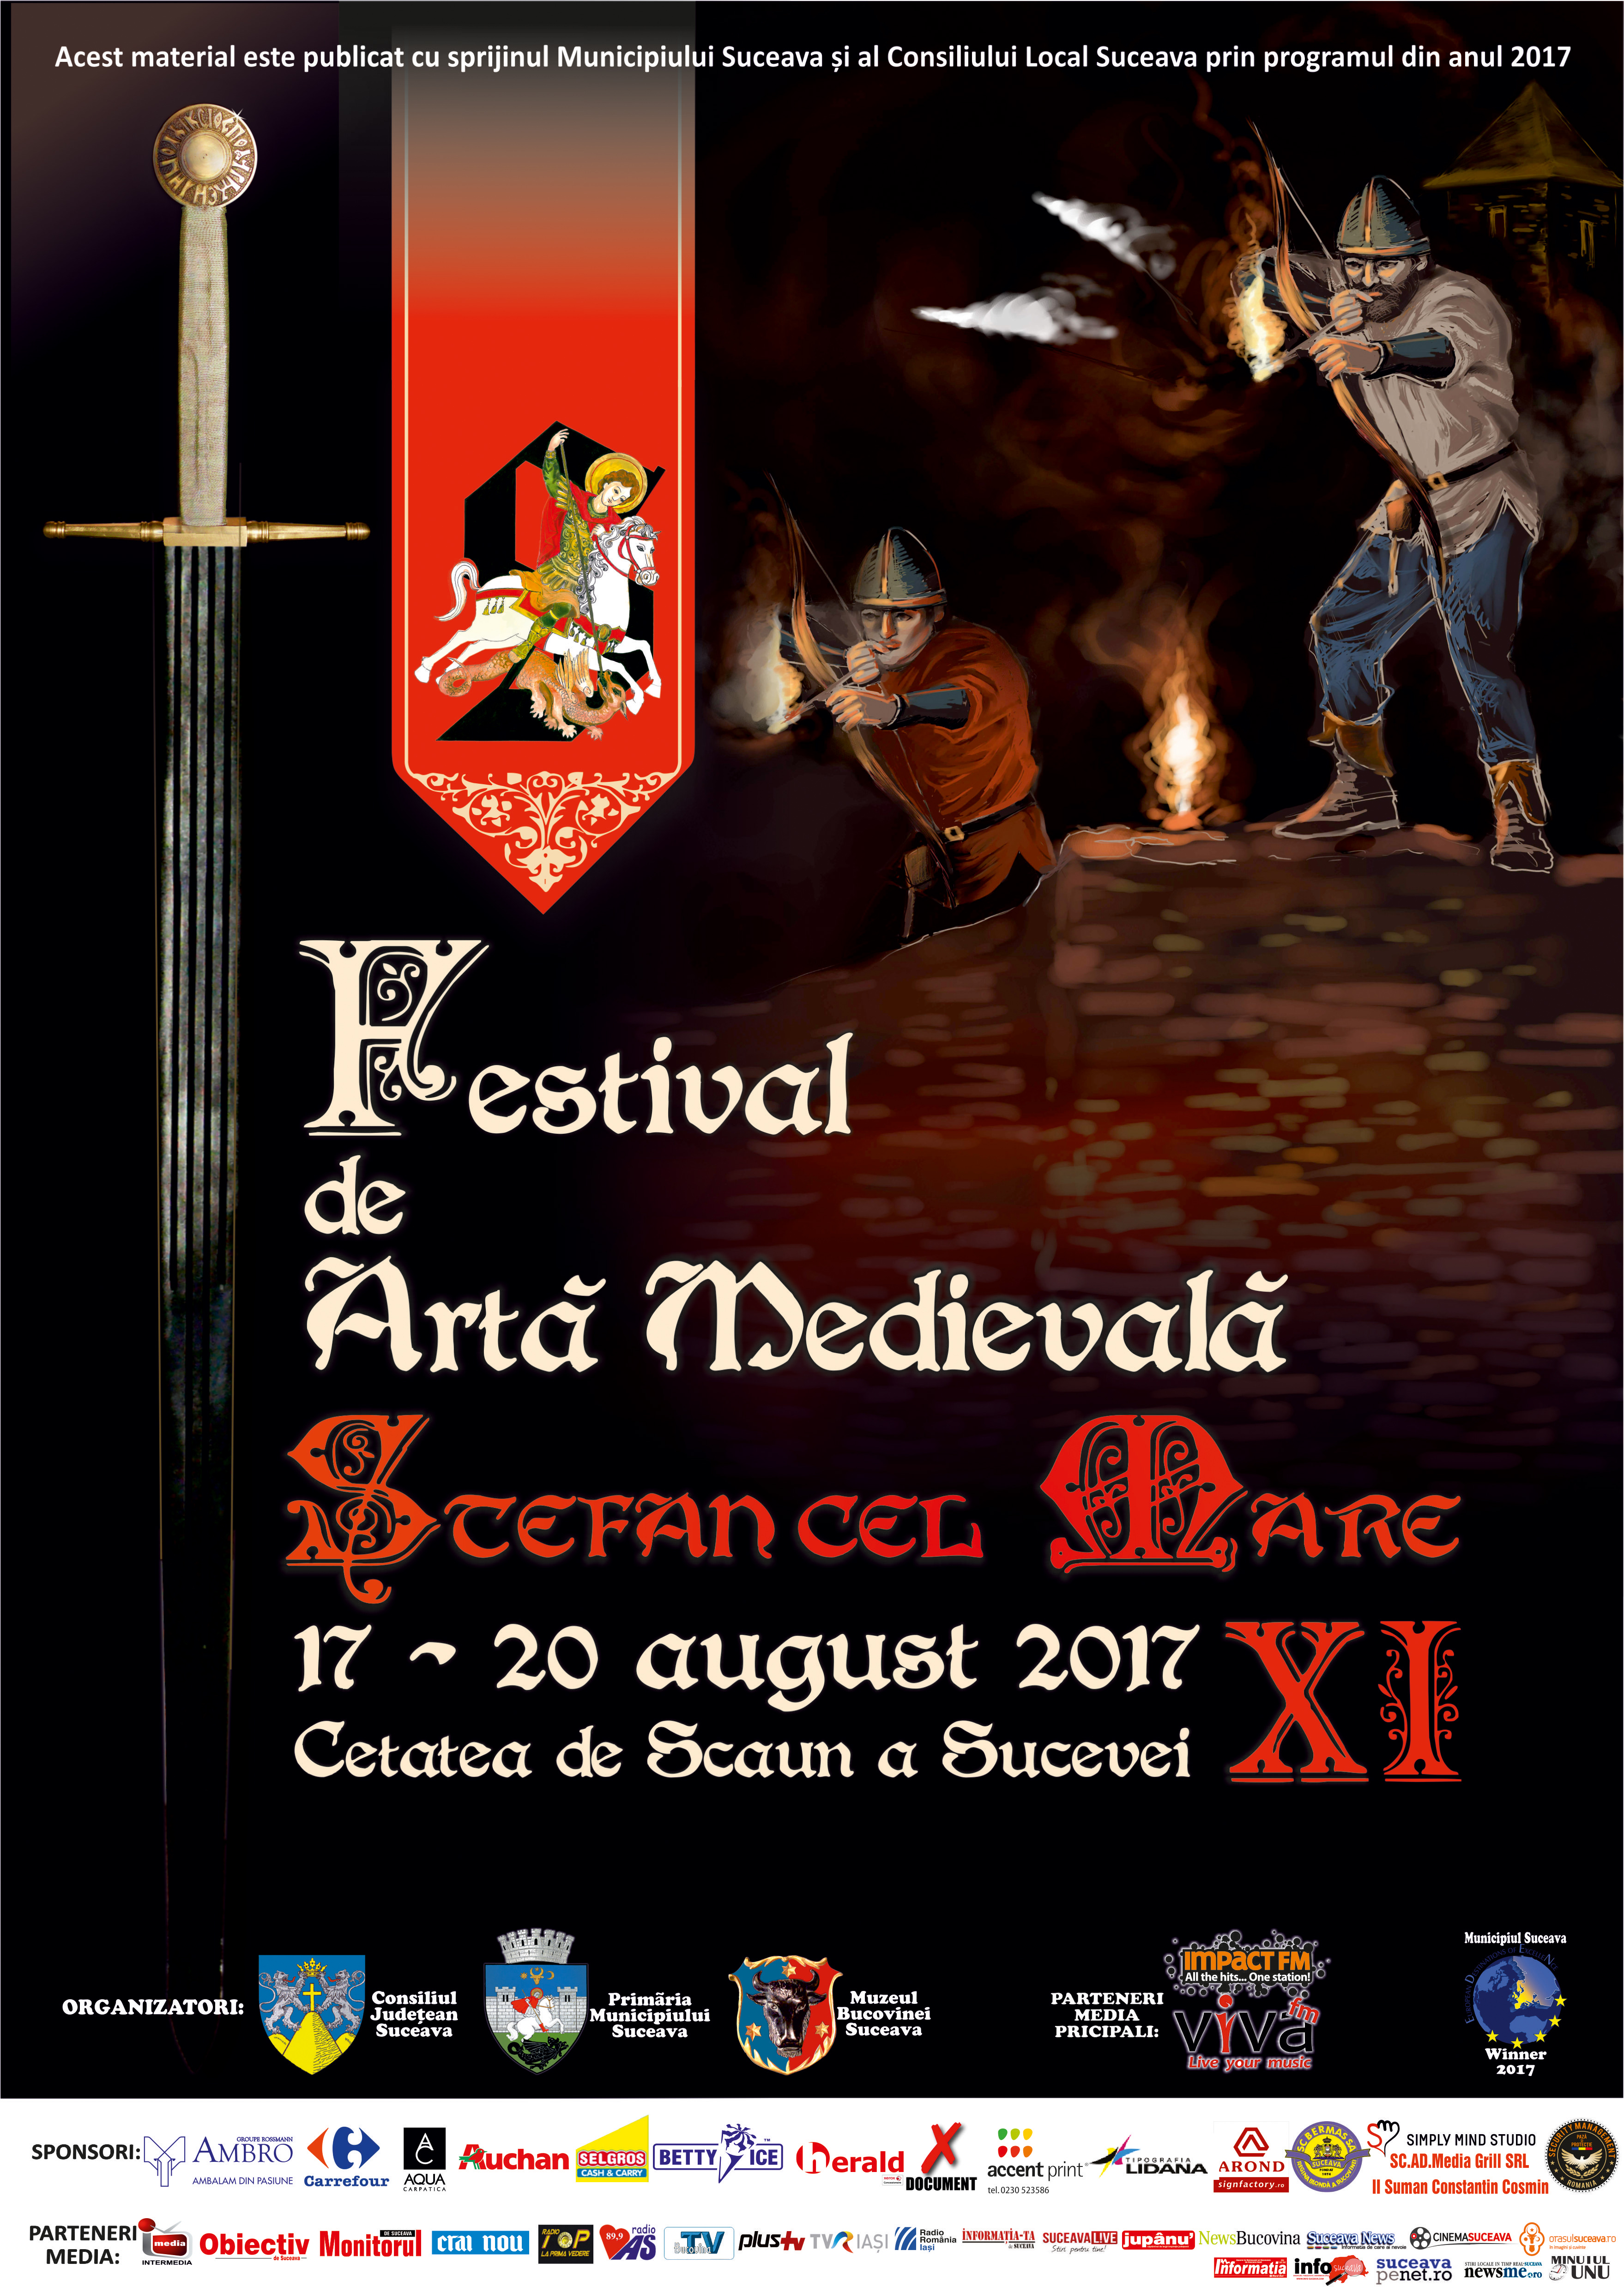 afis medieval final 2017 modificat 8 august 2017